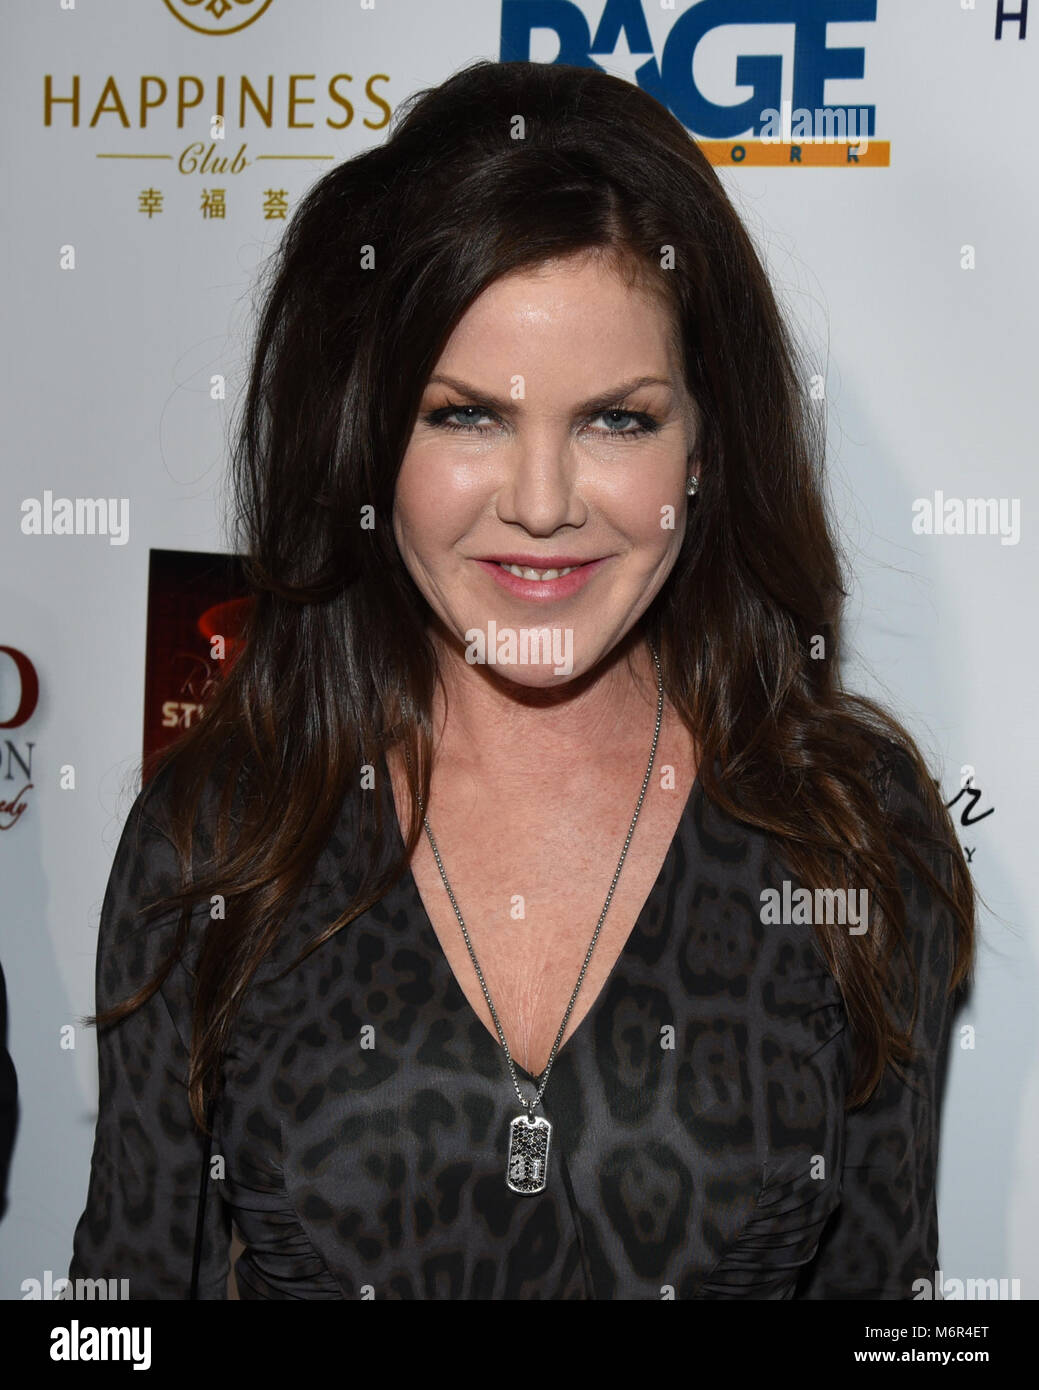 Kira Reed Lorsch Attends The 3rd Annual Roger Neal Style Hollywood Oscar Viewing Black Tie Dinner Gala And Roger Neal Style Gift Suite At The Hollywood